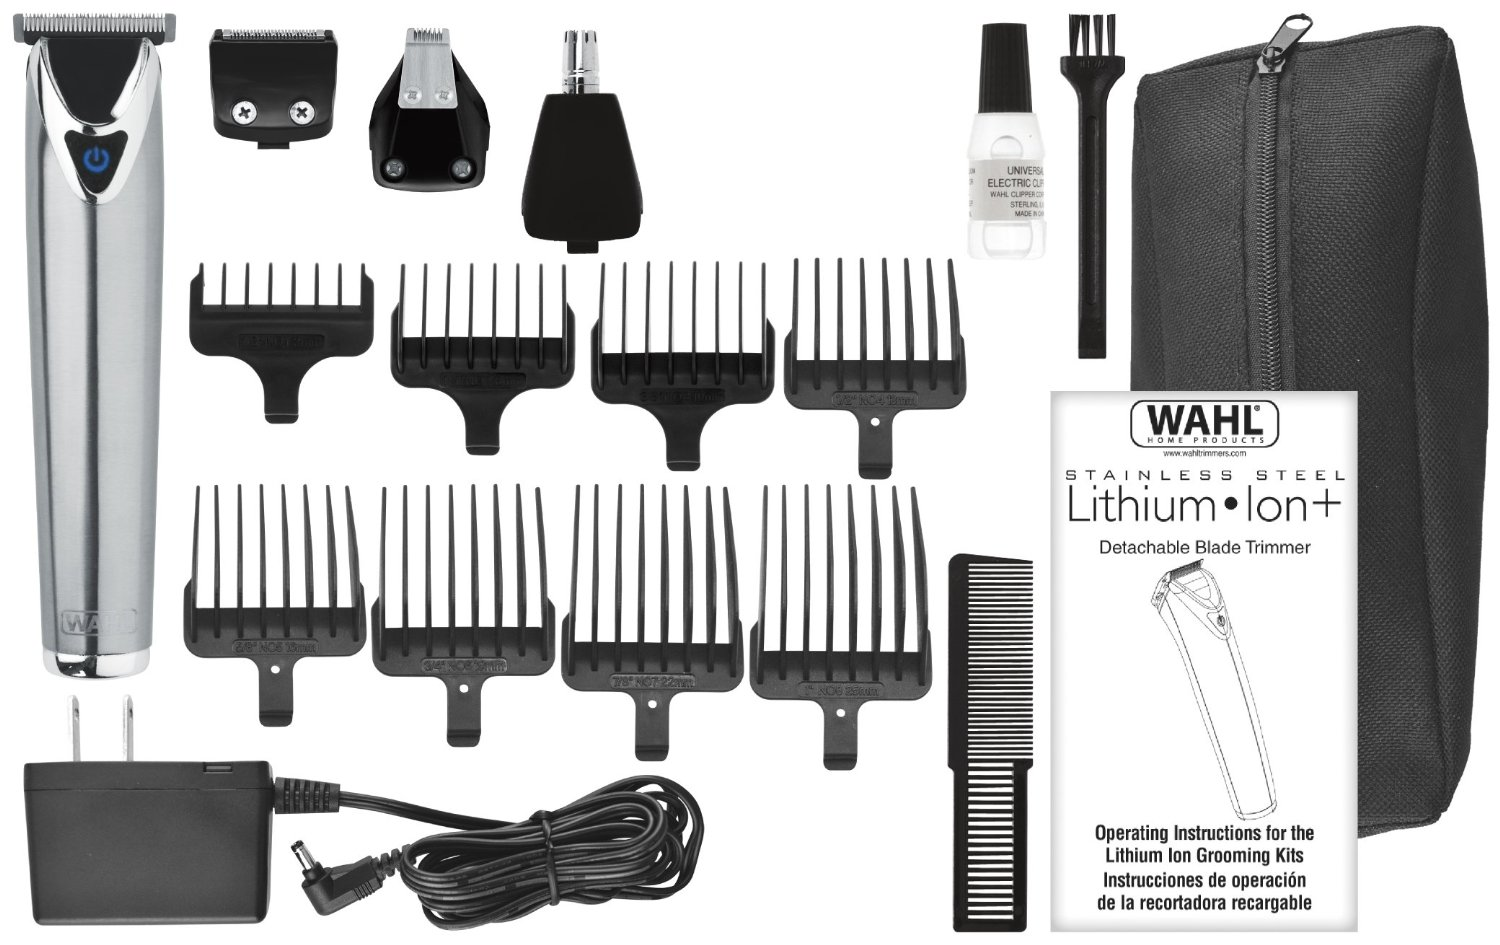 wahl stainless steel lithium ion mustache trimmer night helper. Black Bedroom Furniture Sets. Home Design Ideas